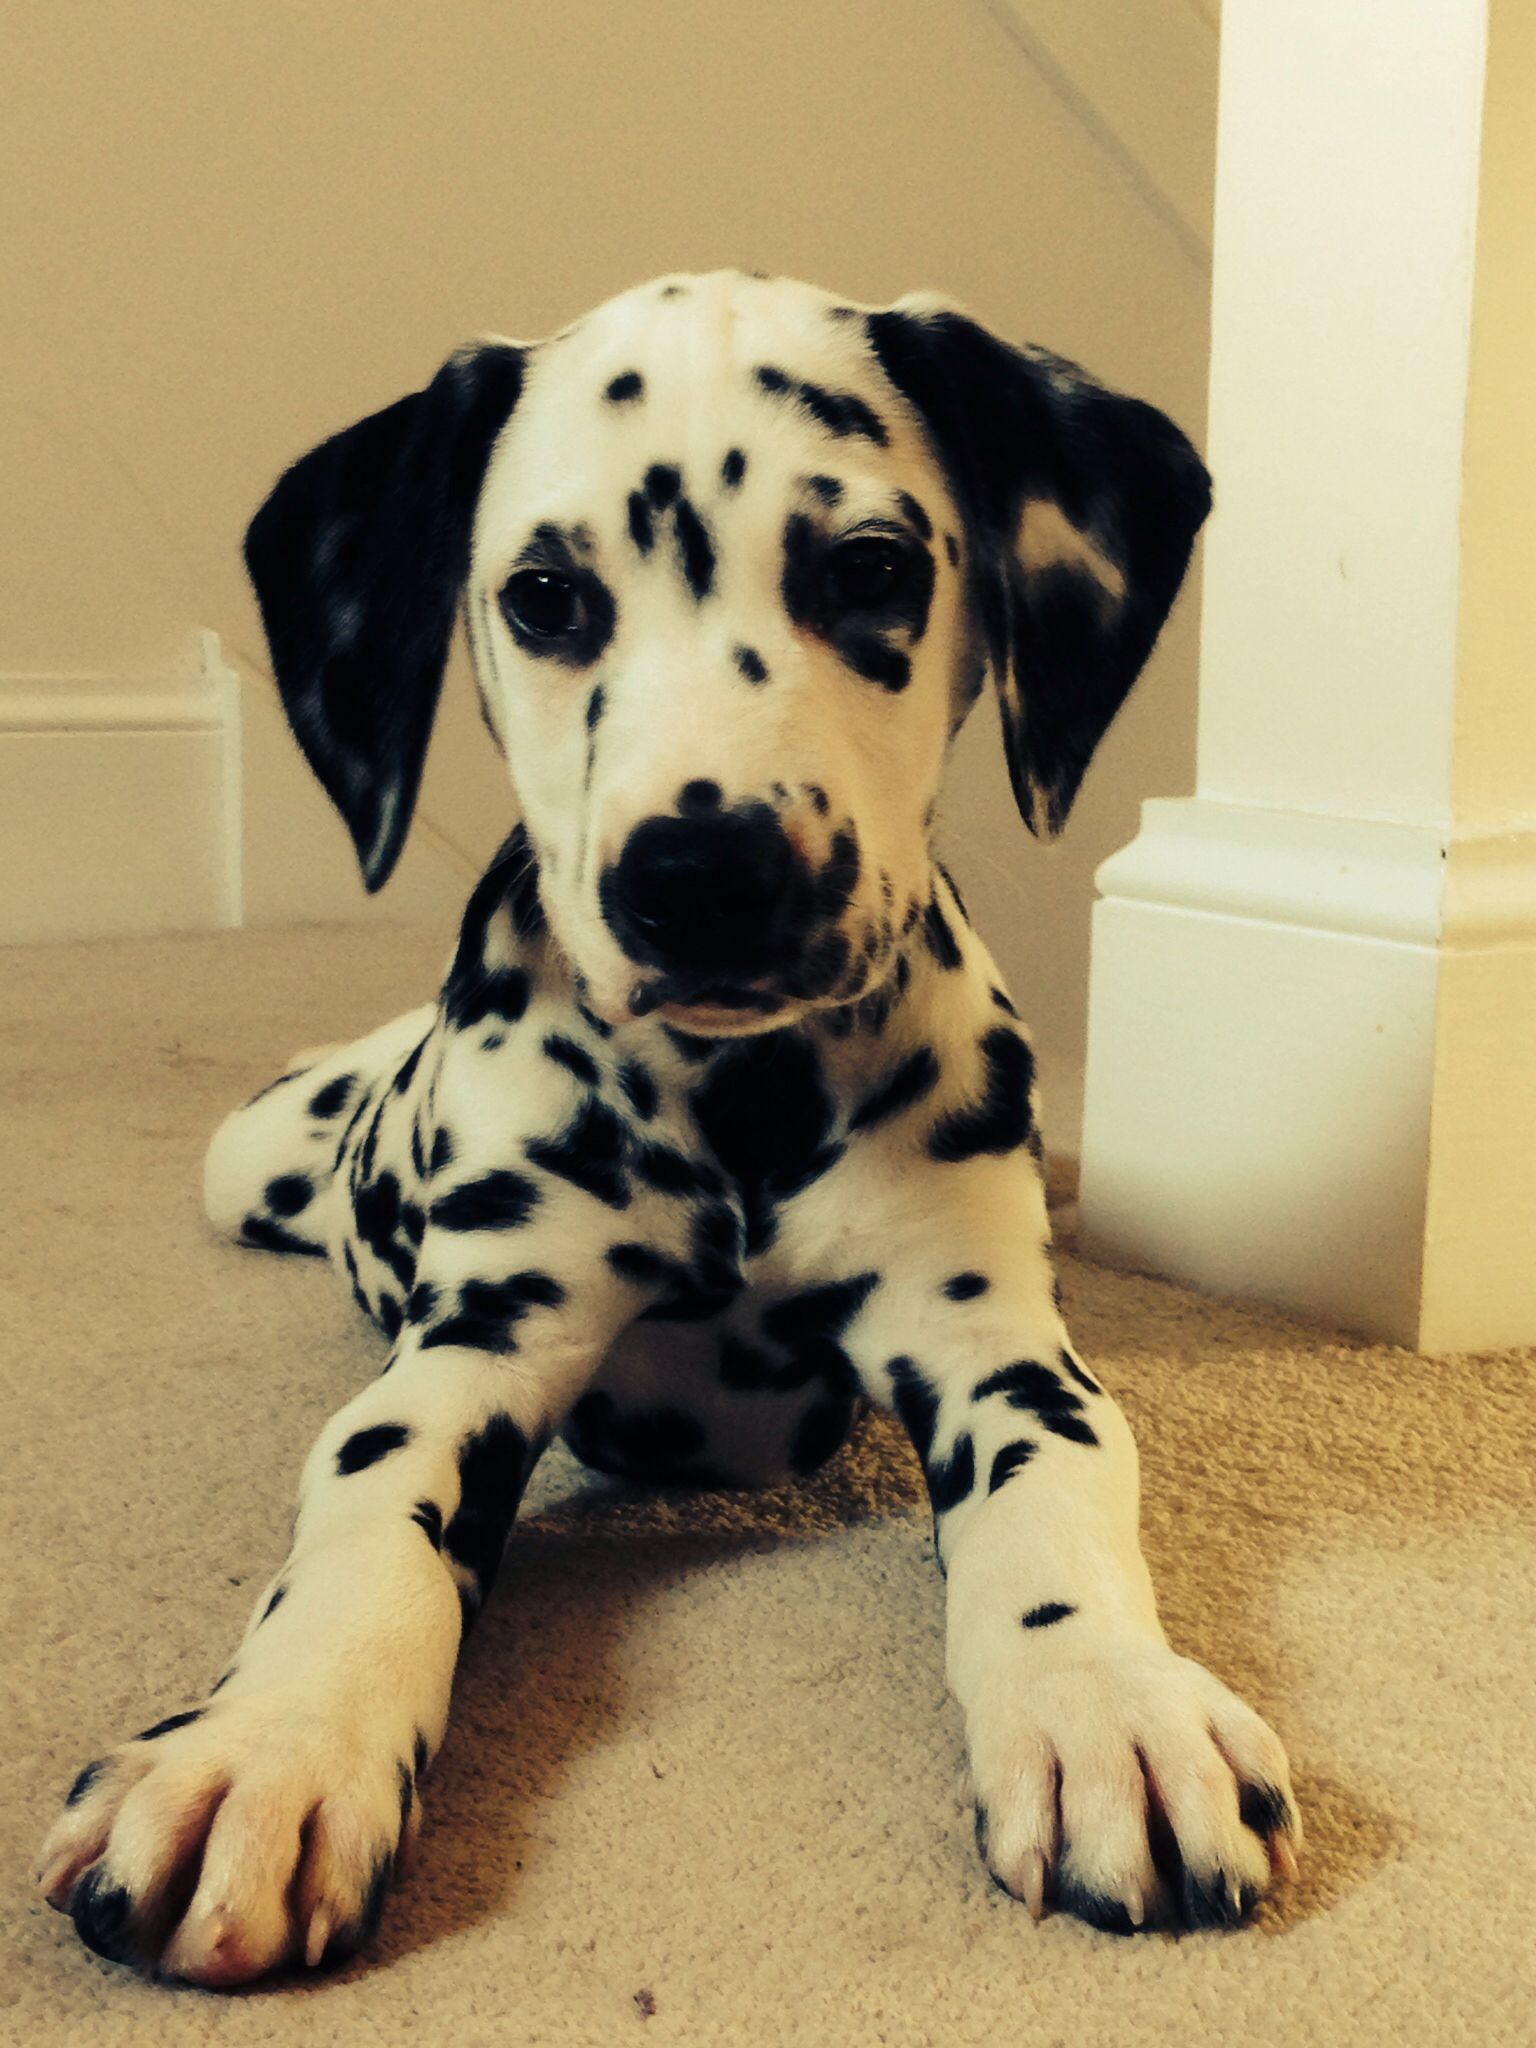 Dalmatian Pup Cute Dogs Dalmatian Puppy Cute Animals